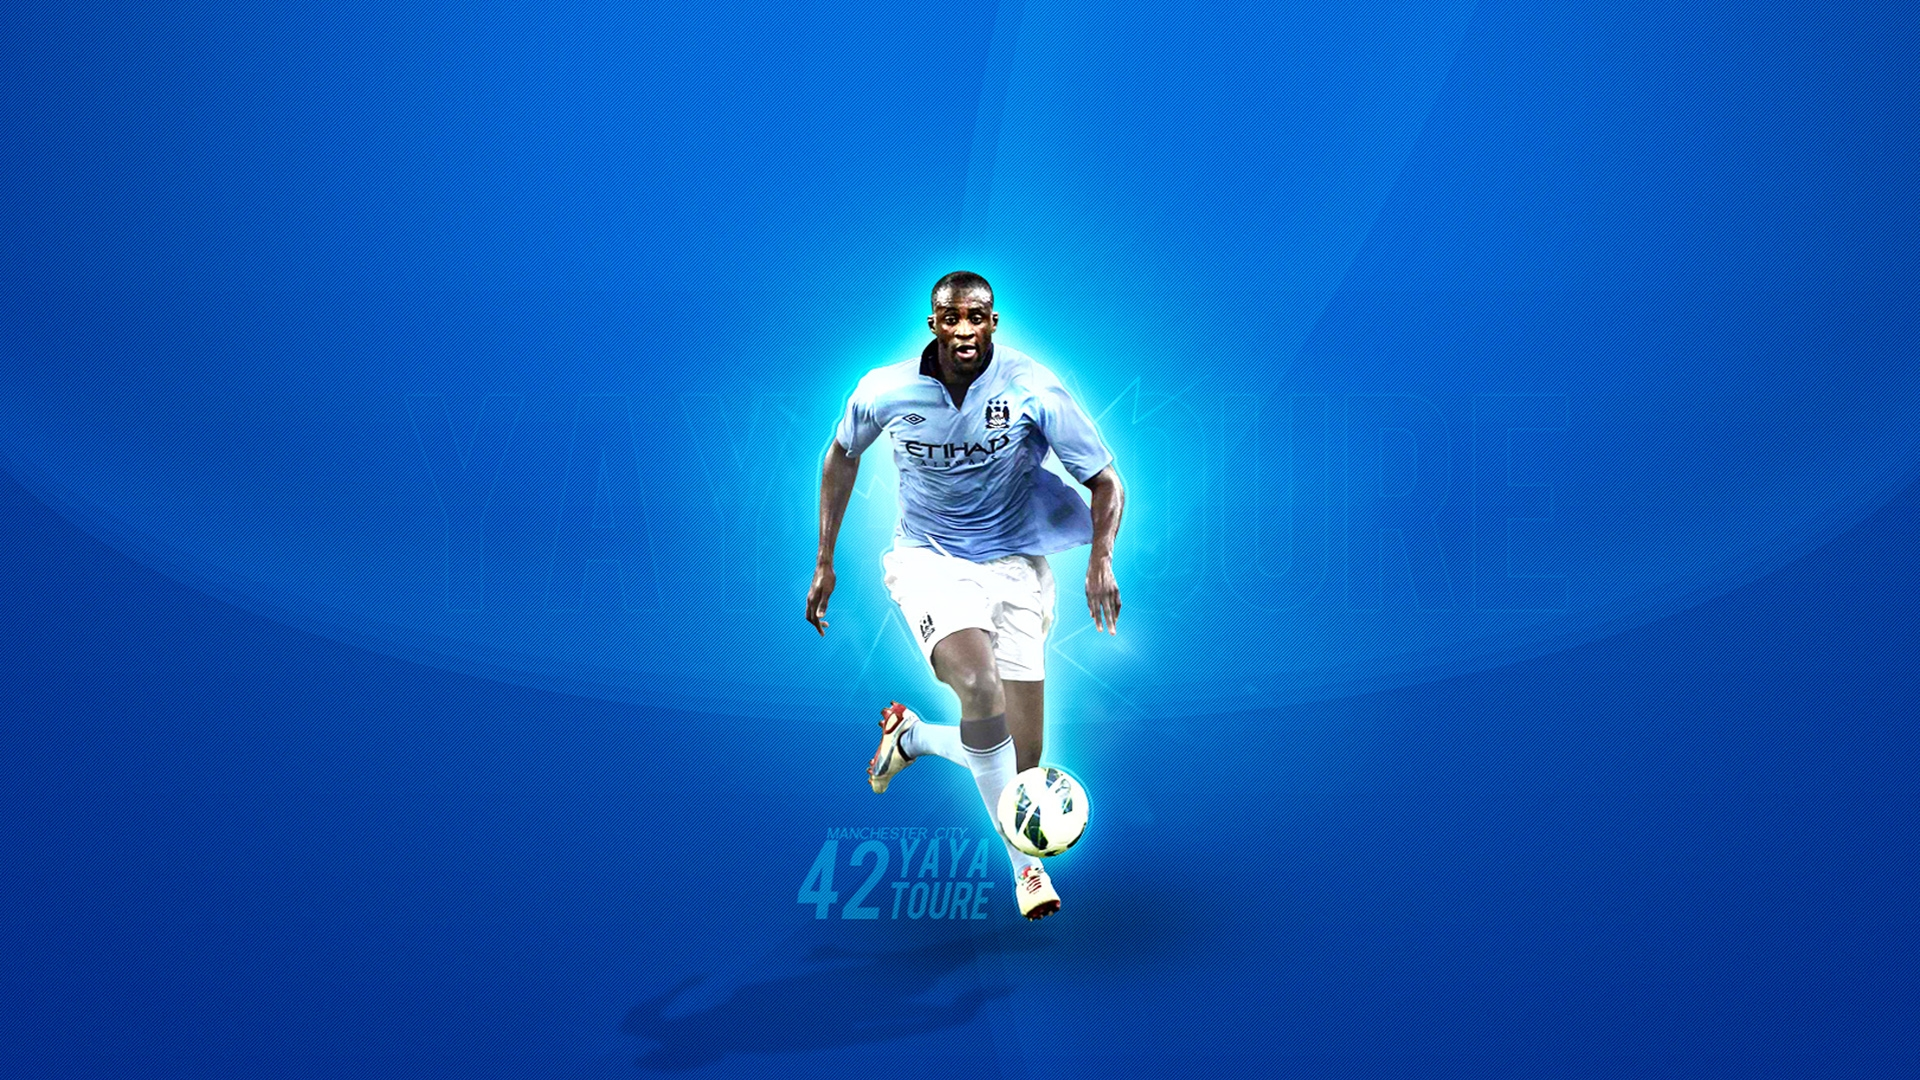 Manchester City Yaya Toure Wallpaper